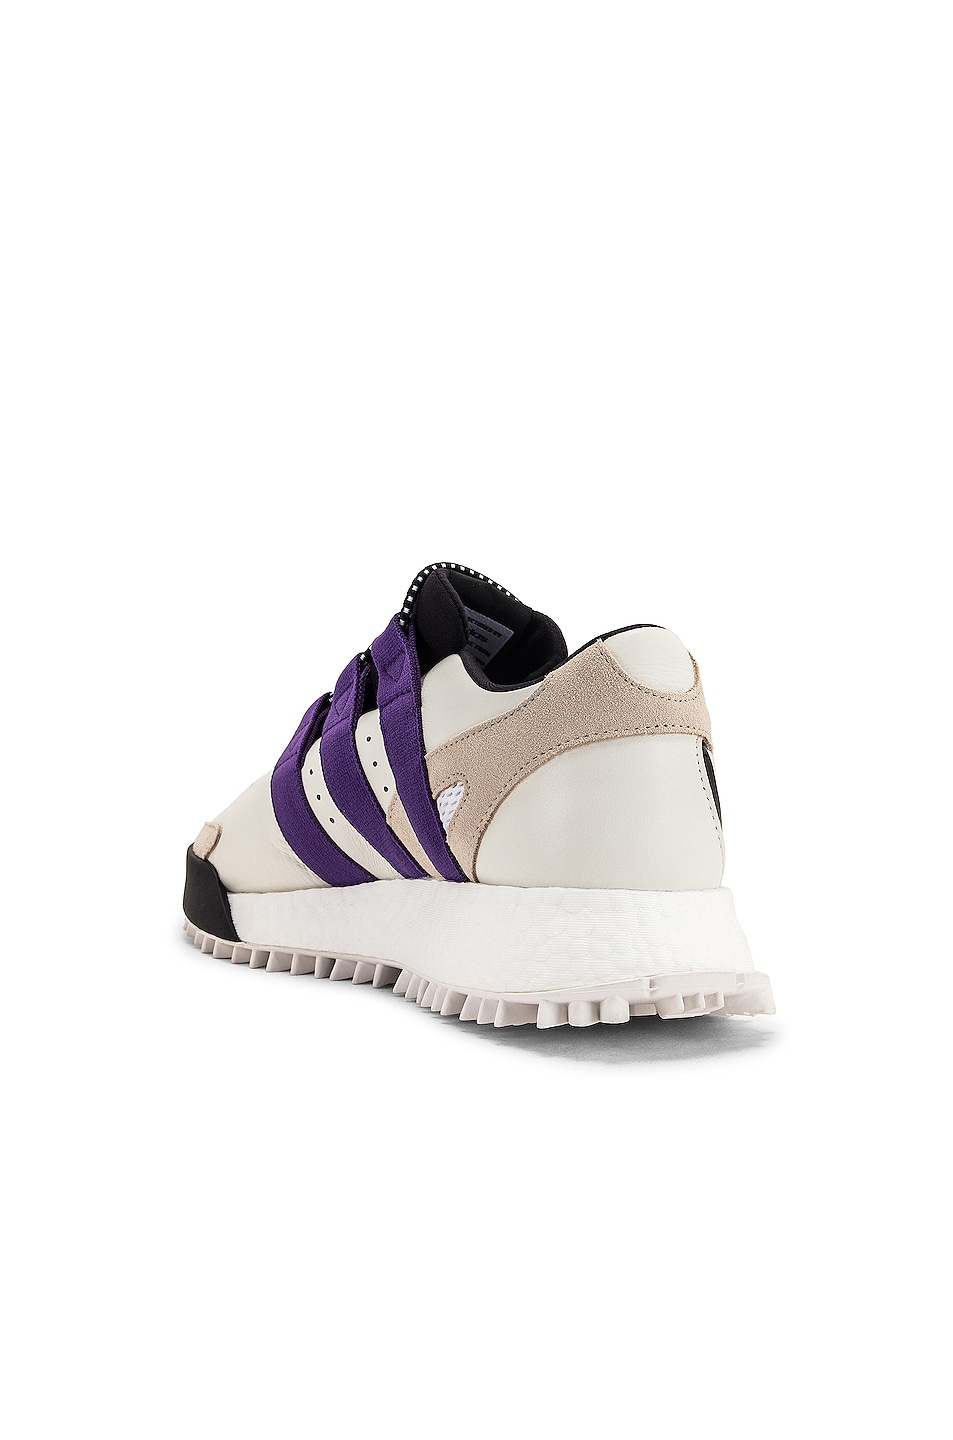 Image 3 of adidas by Alexander Wang Wangbody Run Sneaker in Core White, Sharp Purple F11 & Clear Brown